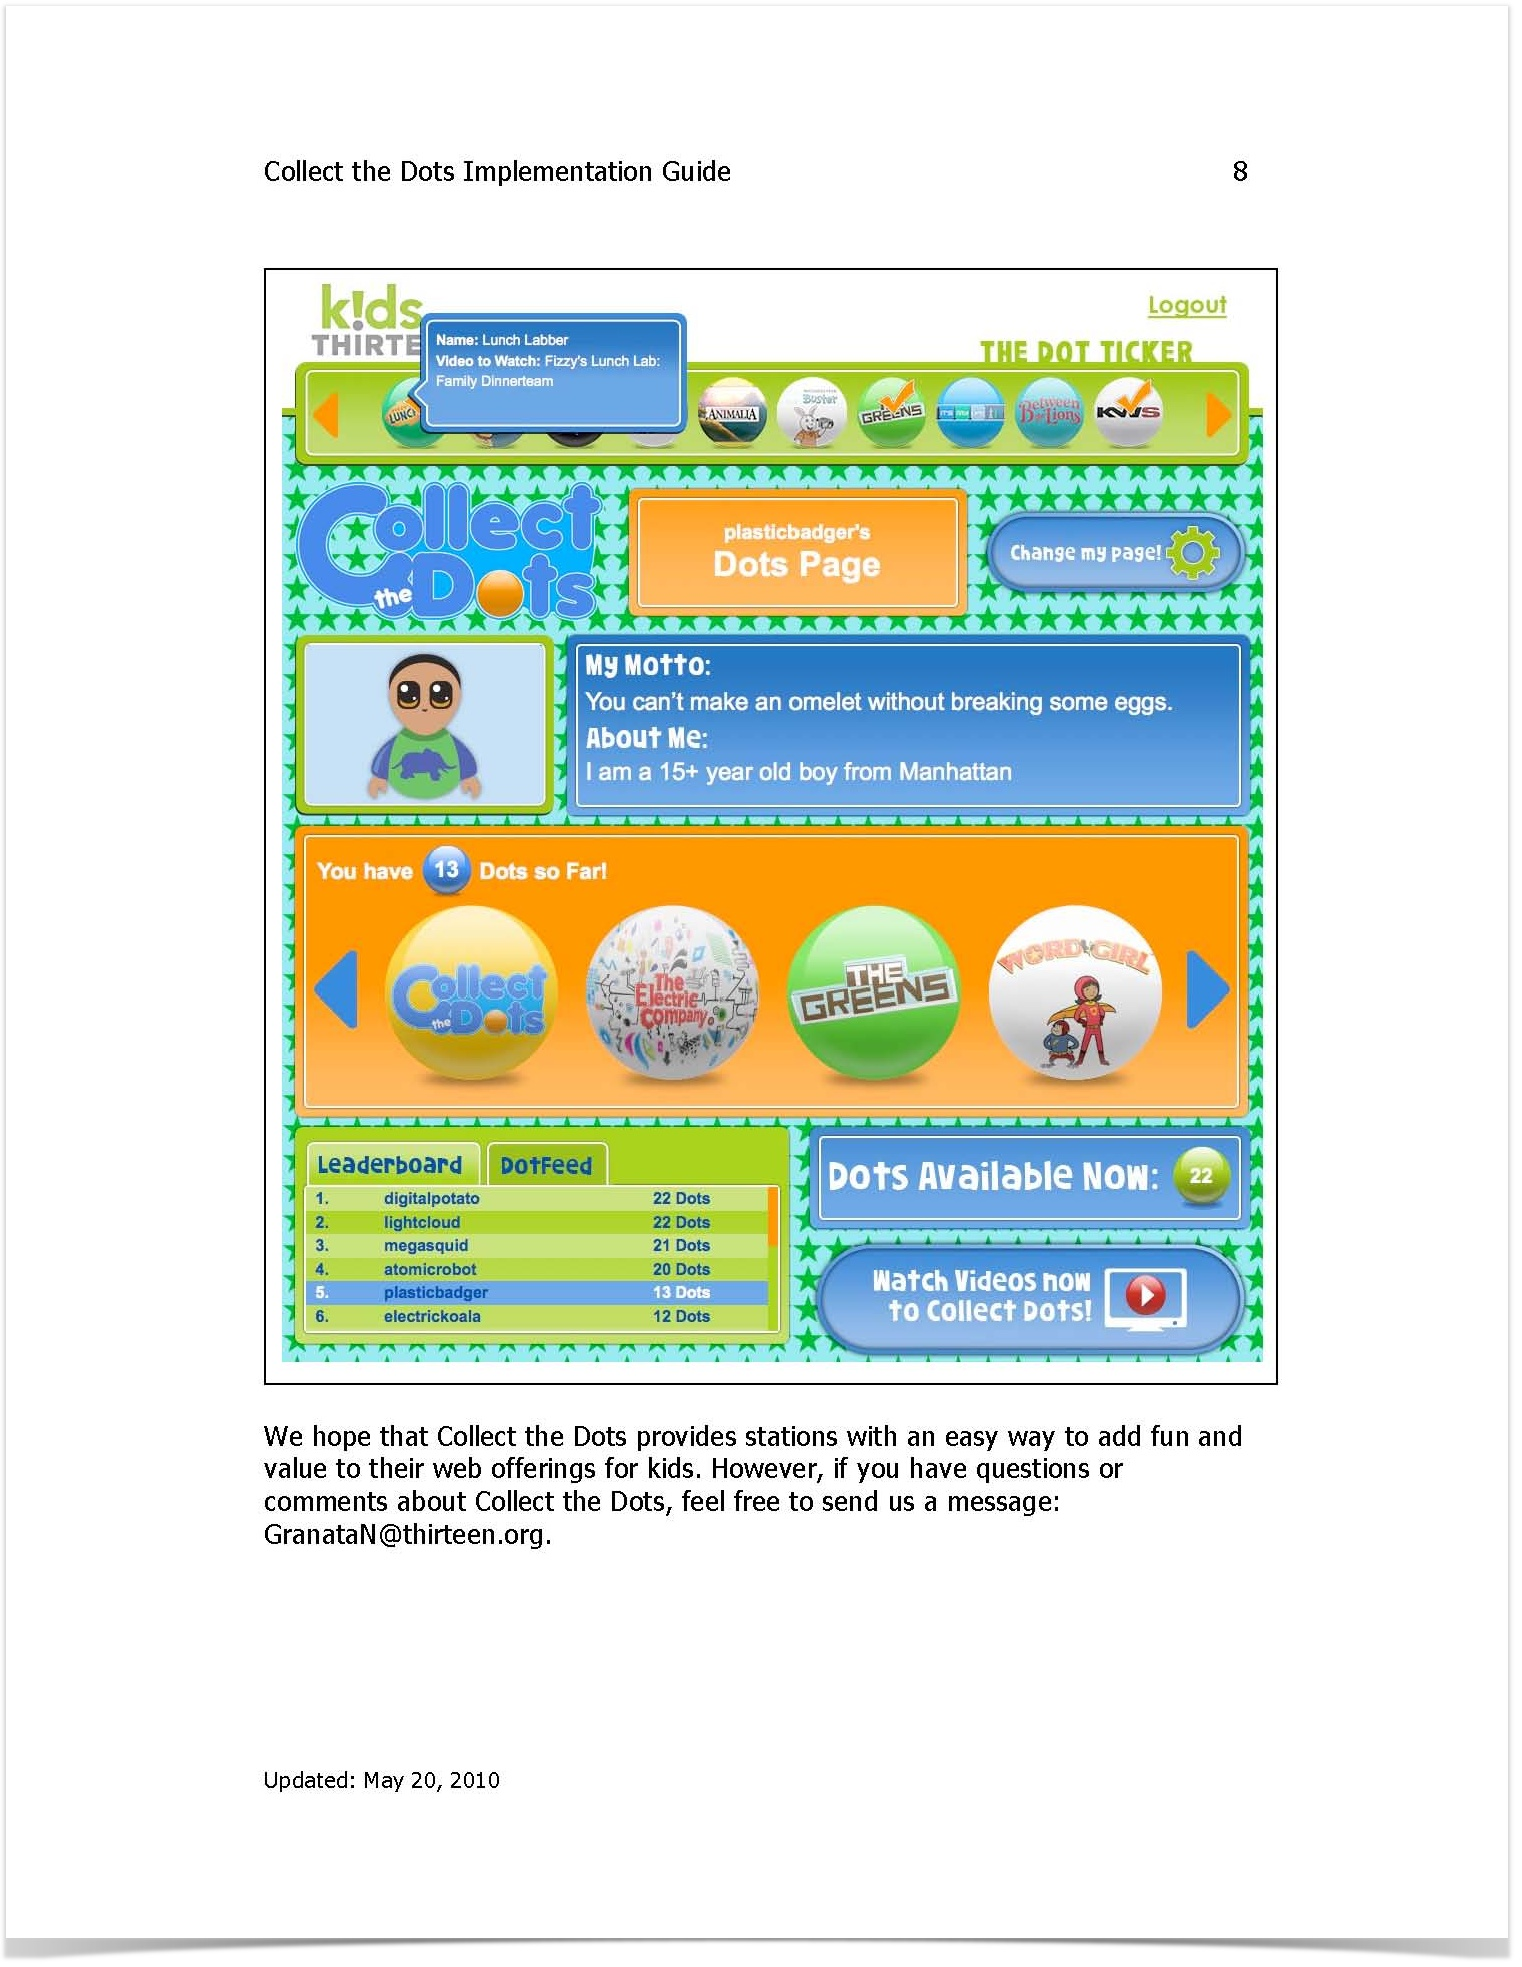 CollectTheDots_Page_8.jpg